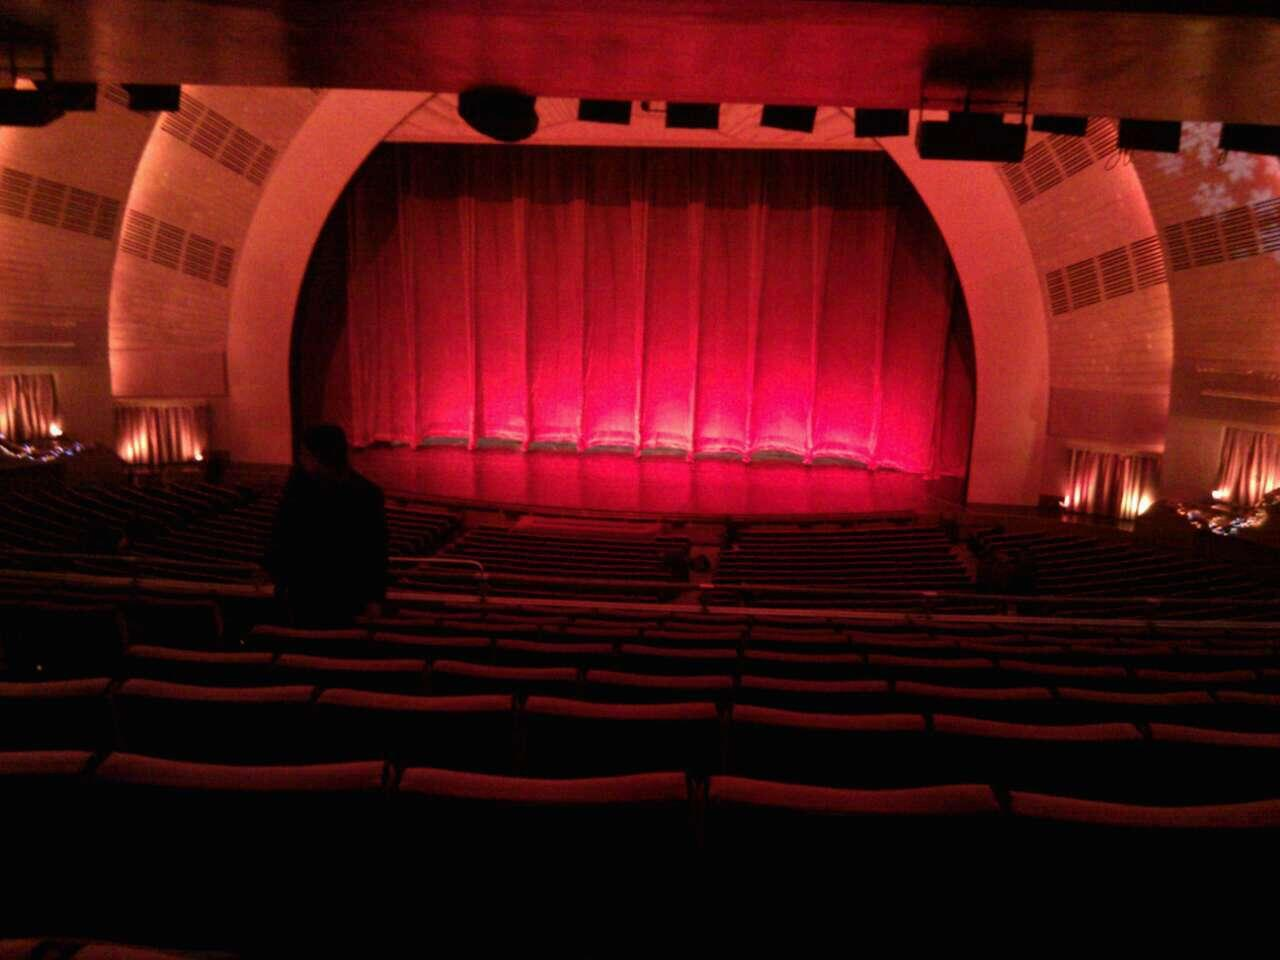 Radio city music hall interactive concert seating plan for Restaurant seating chart app